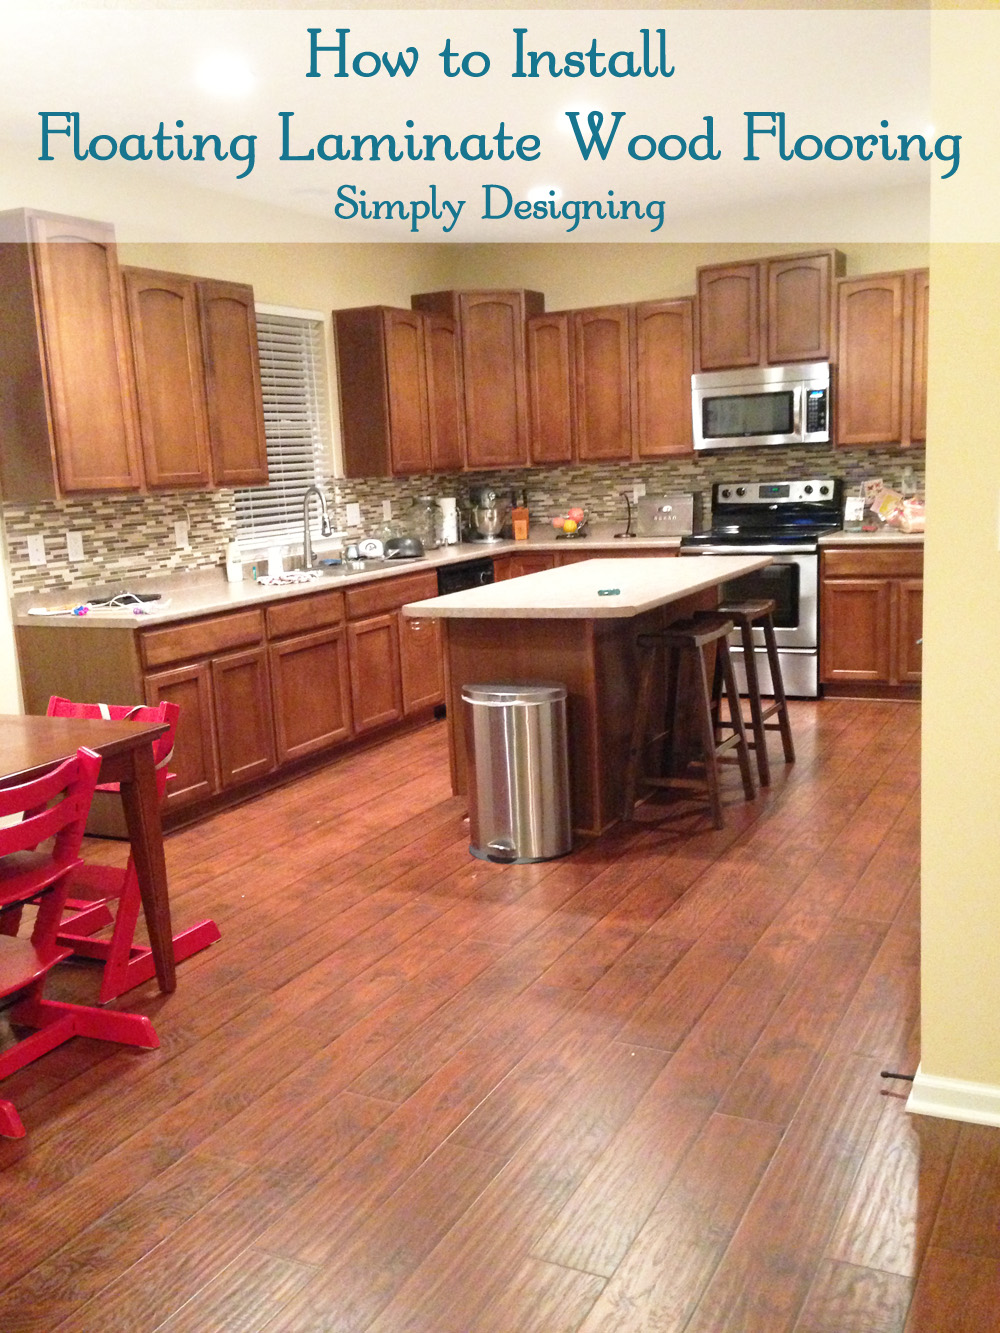 how to install floating laminate wood flooring diy homeimprovement flooring simply - Laminate Flooring In A Kitchen